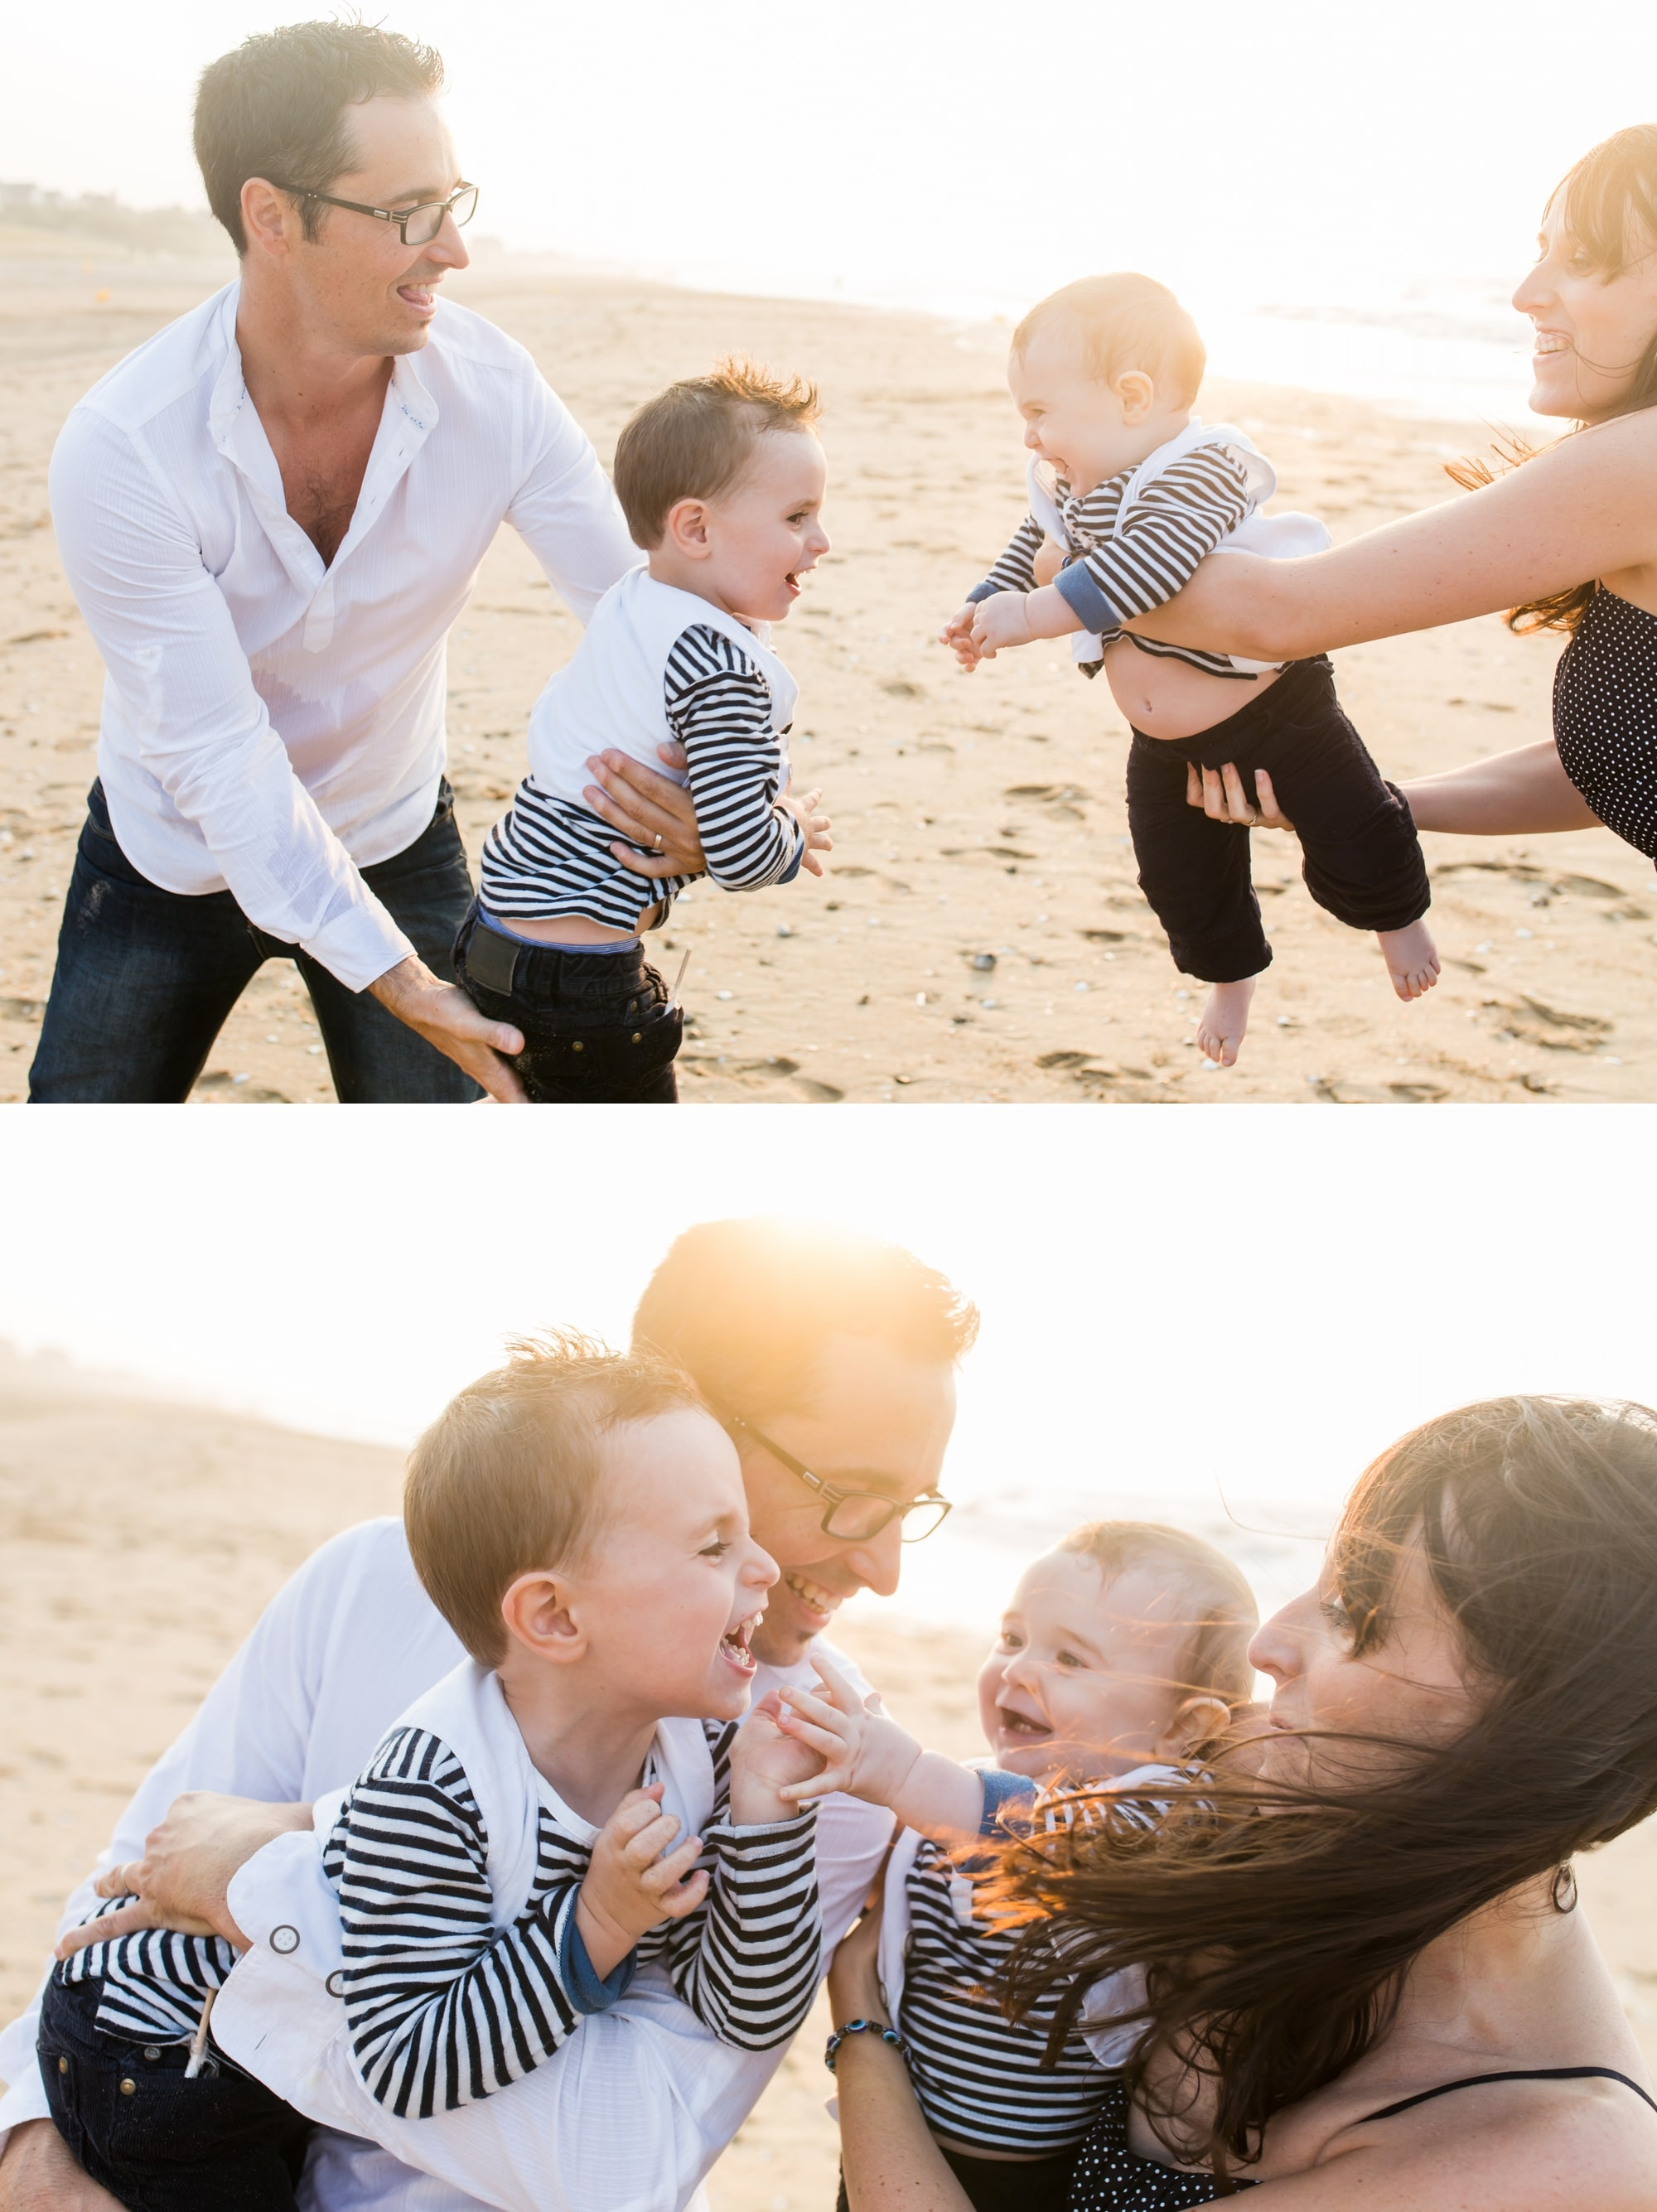 séance famille cabourg basse normandie photographe shooting lifestyle-35